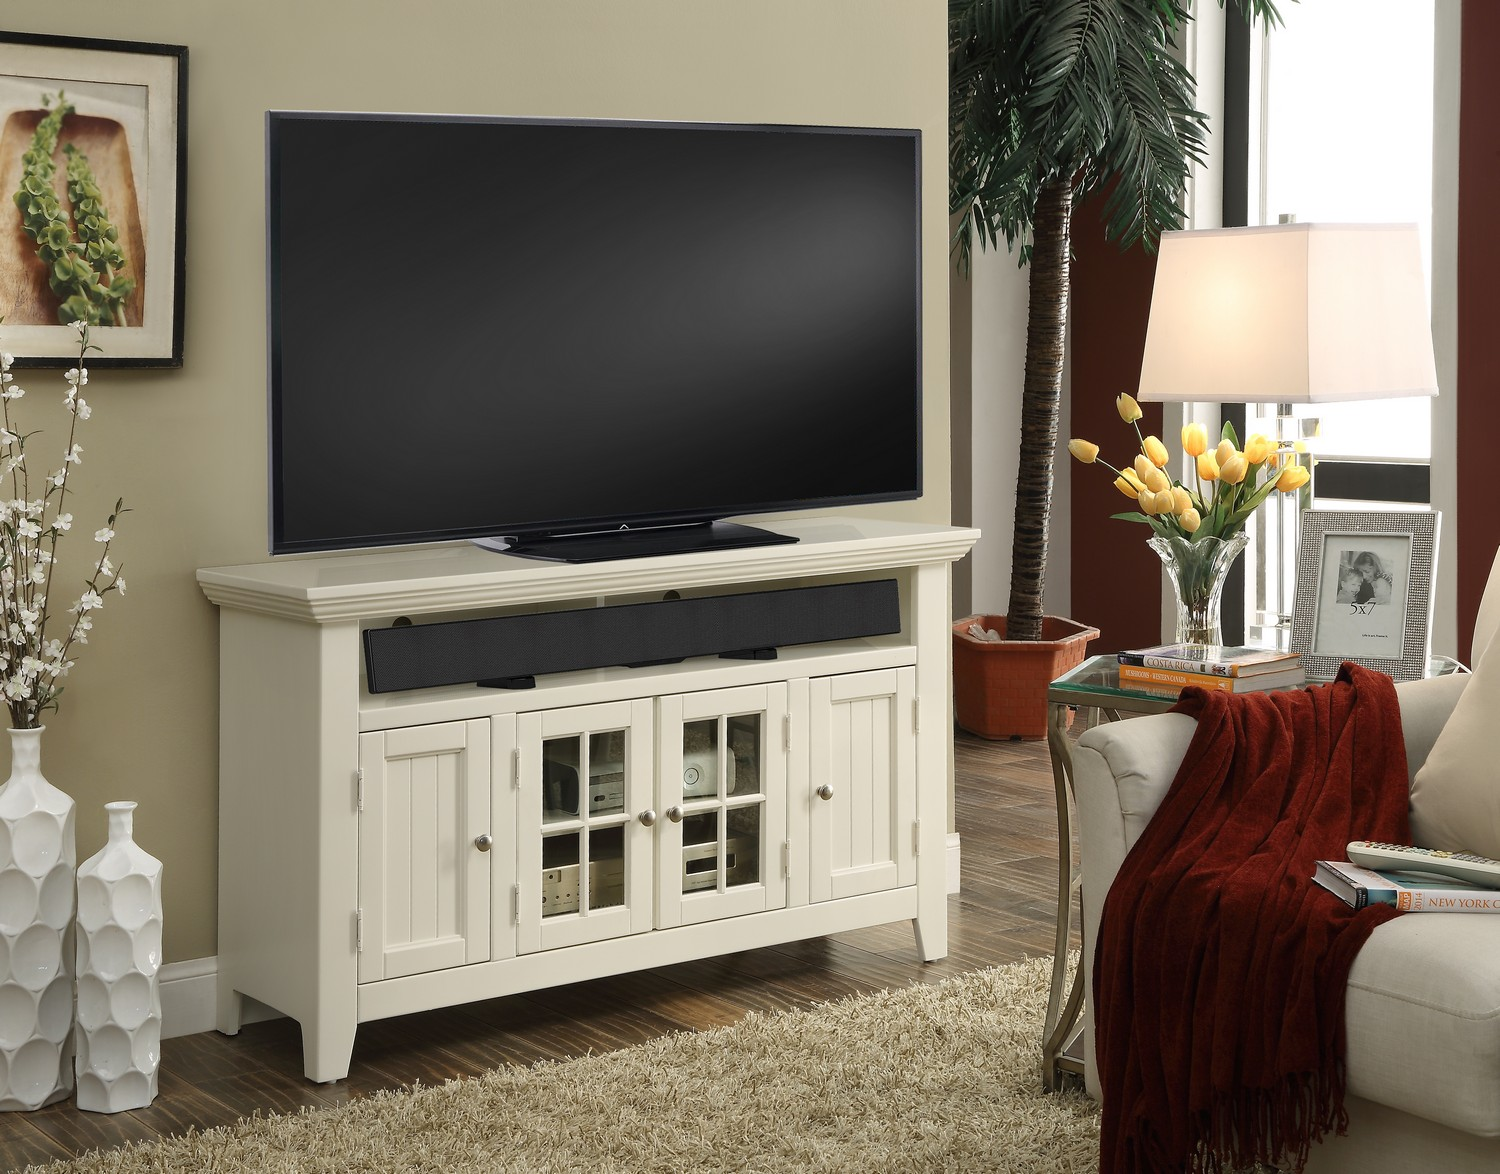 parker house tidewater 50in tv console - 50in Tv